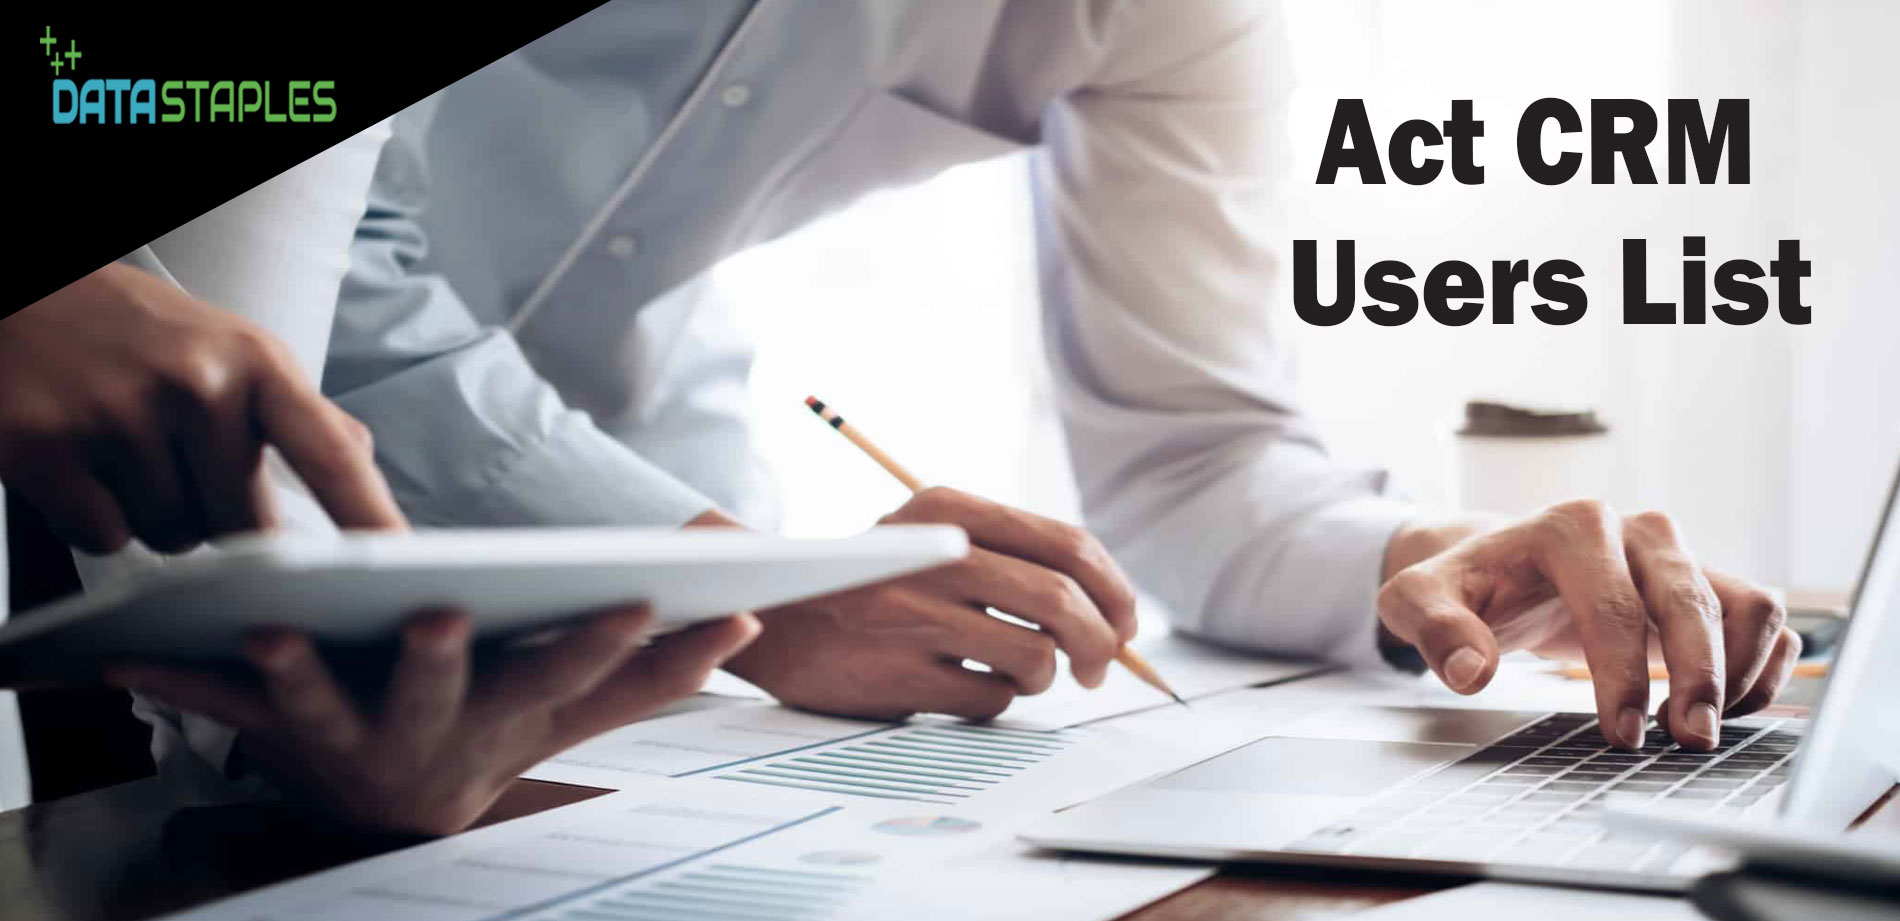 Act CRM Users Mailing List | DataStaples